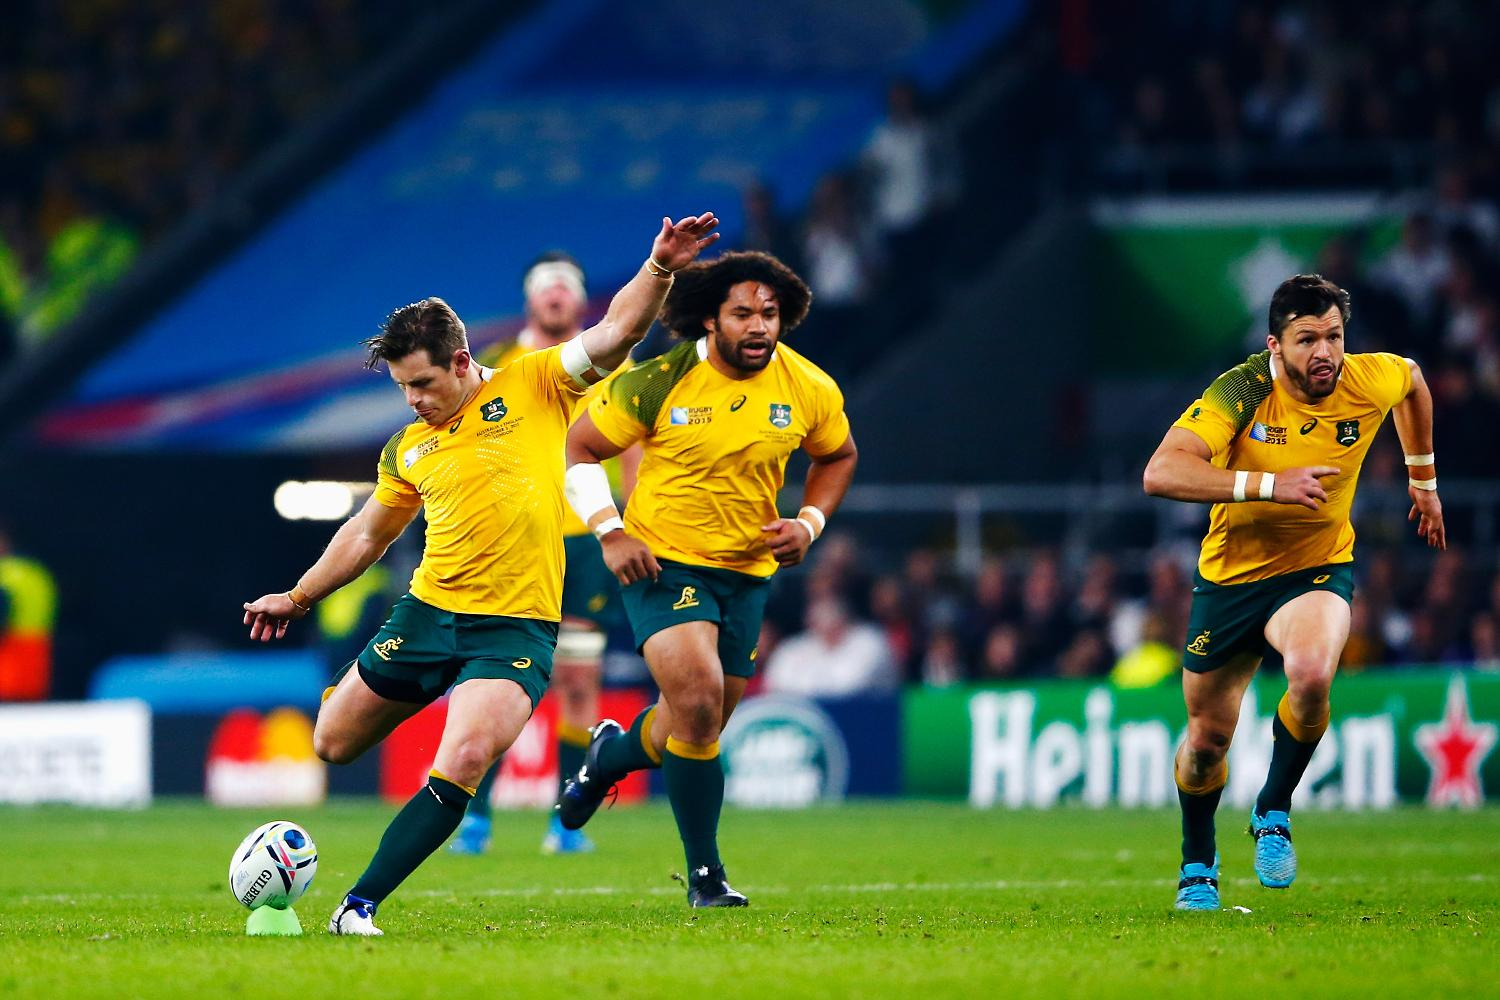 streaming rugby world cup 2015 free